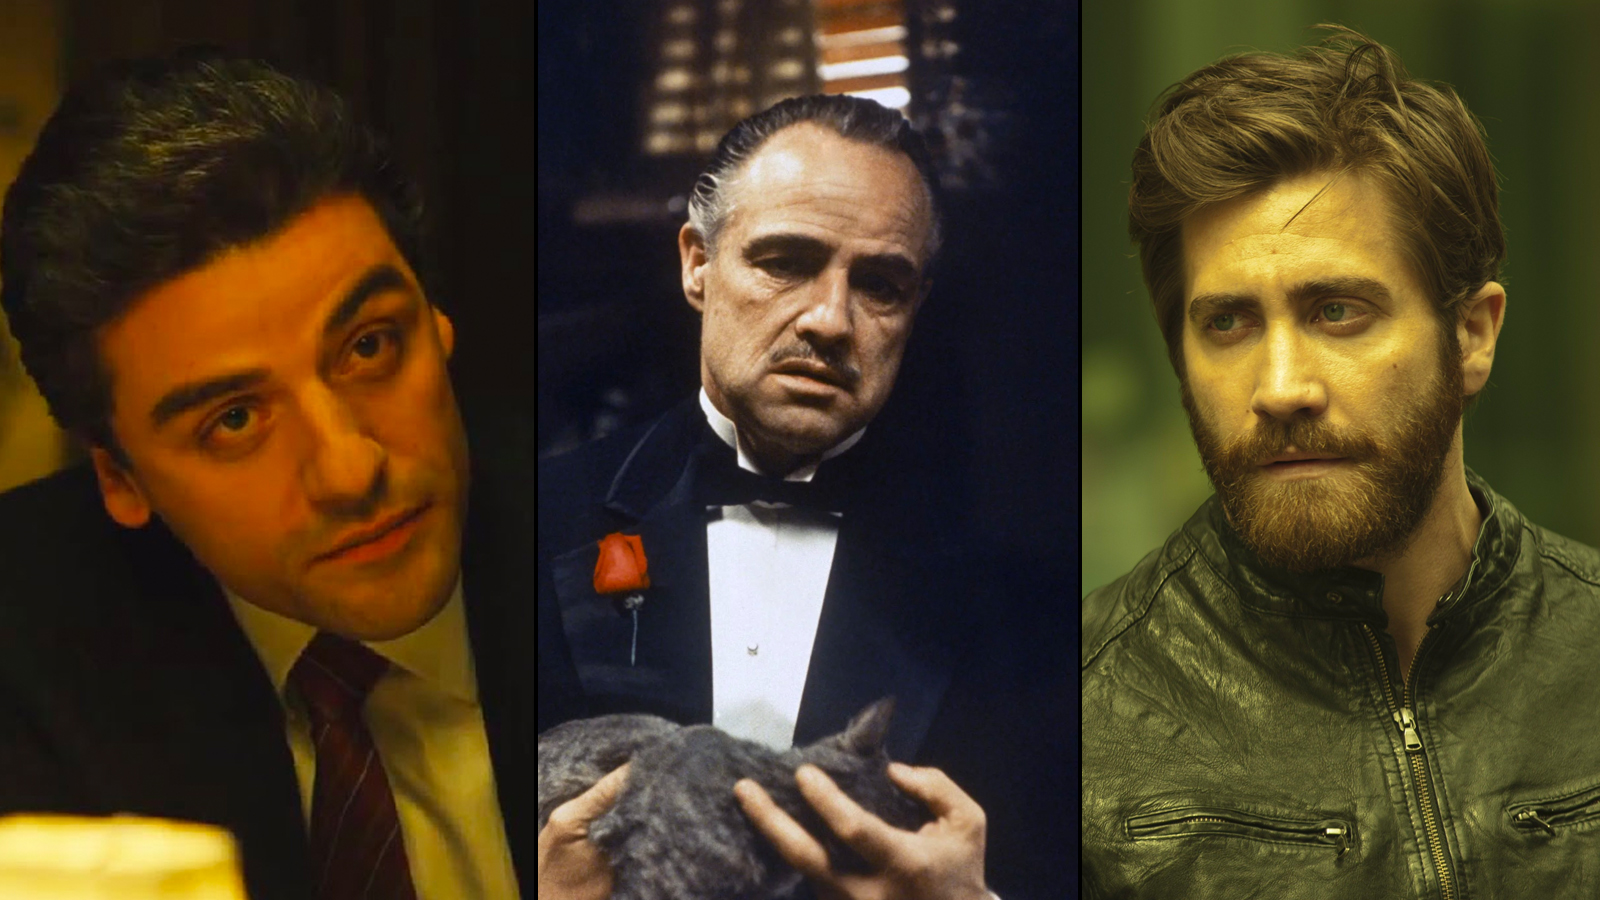 Francis Ford Coppola's 'Godfather III' gets new director's cut and title